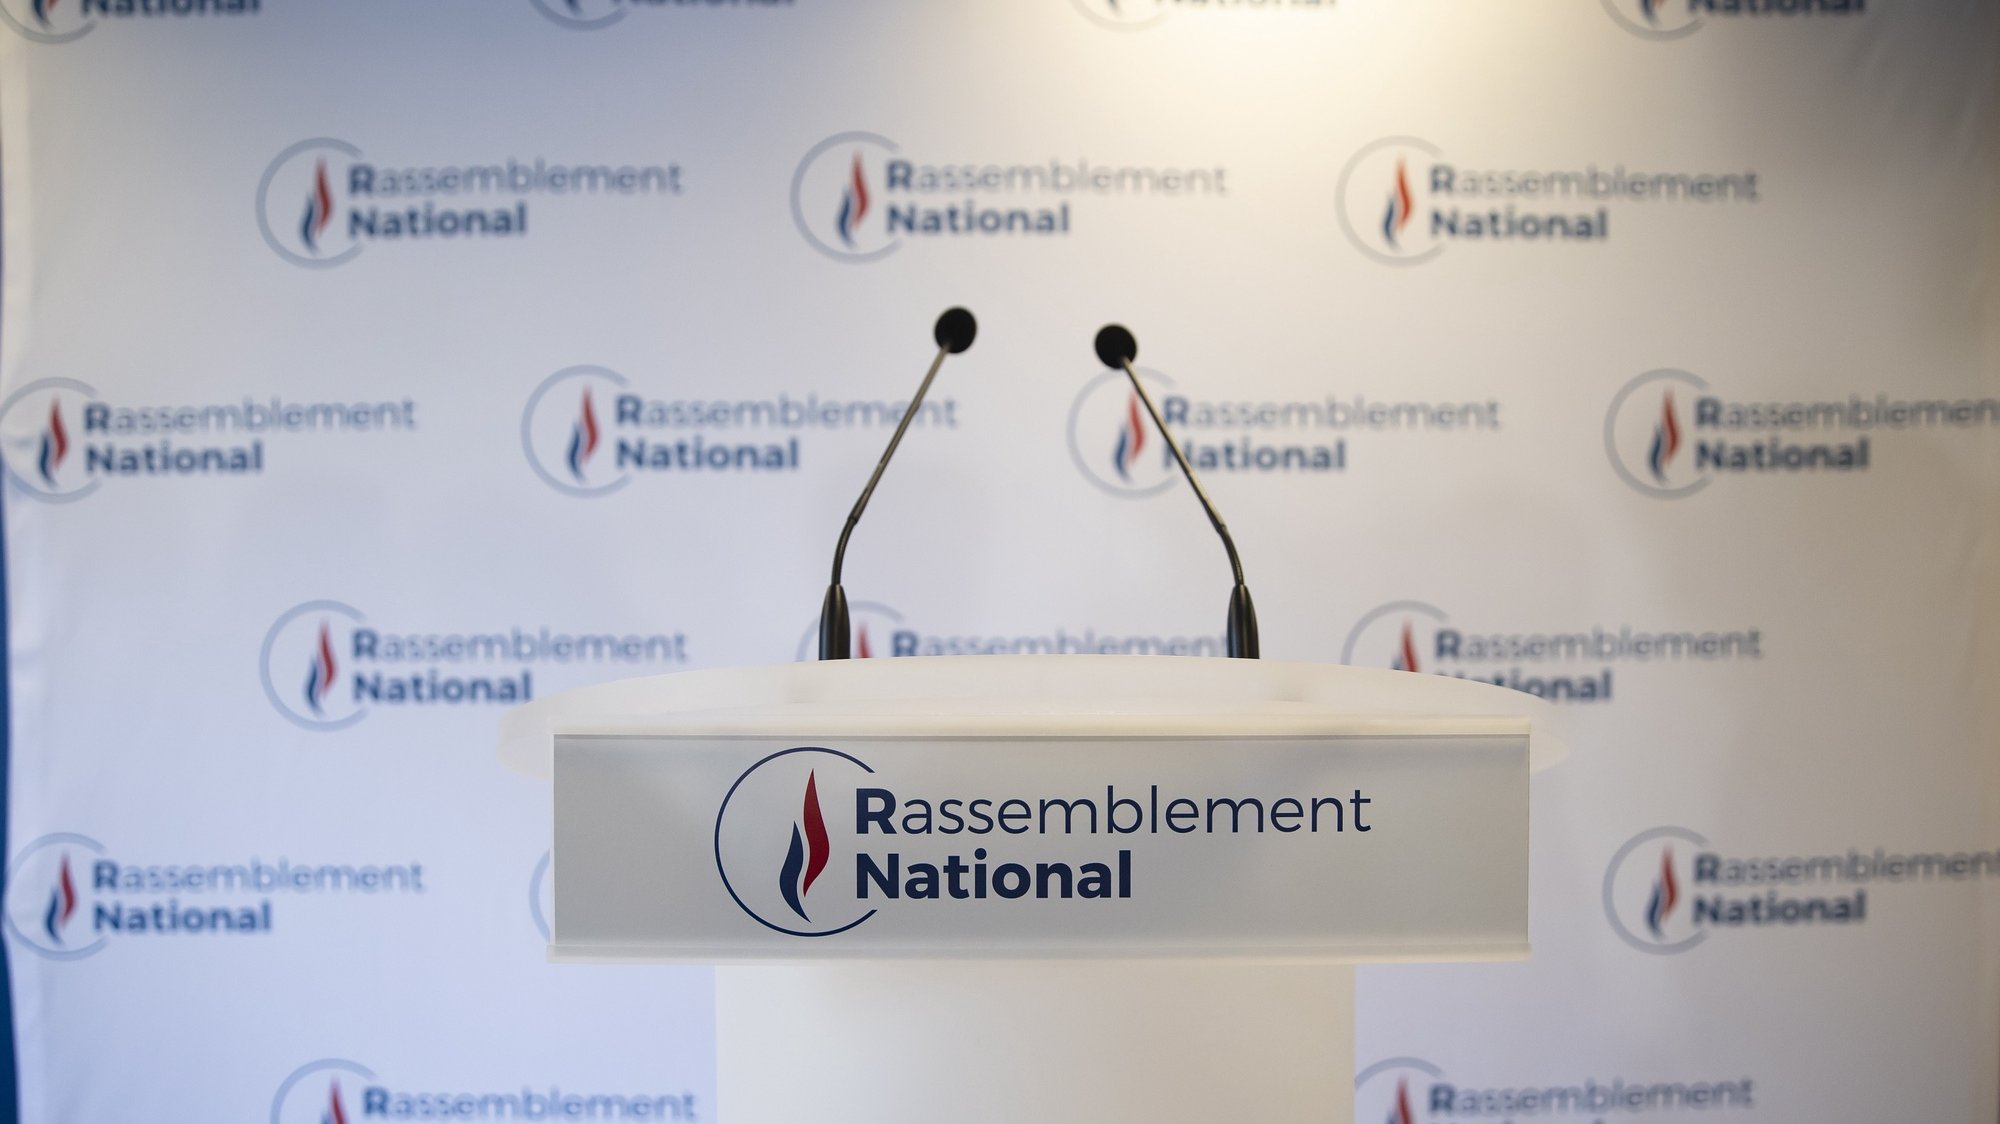 epa09306535 A view of an empty podium ahead of far-right Rassemblement National (RN) party's president Marine Le Pen's statement at the party headquarters in Nanterrre near Paris, France, 27 June 2021. Polls closed after a second round vote of the country's regional election, with early estimations indicating a clear loss for France's RN party.  EPA/IAN LANGSDON